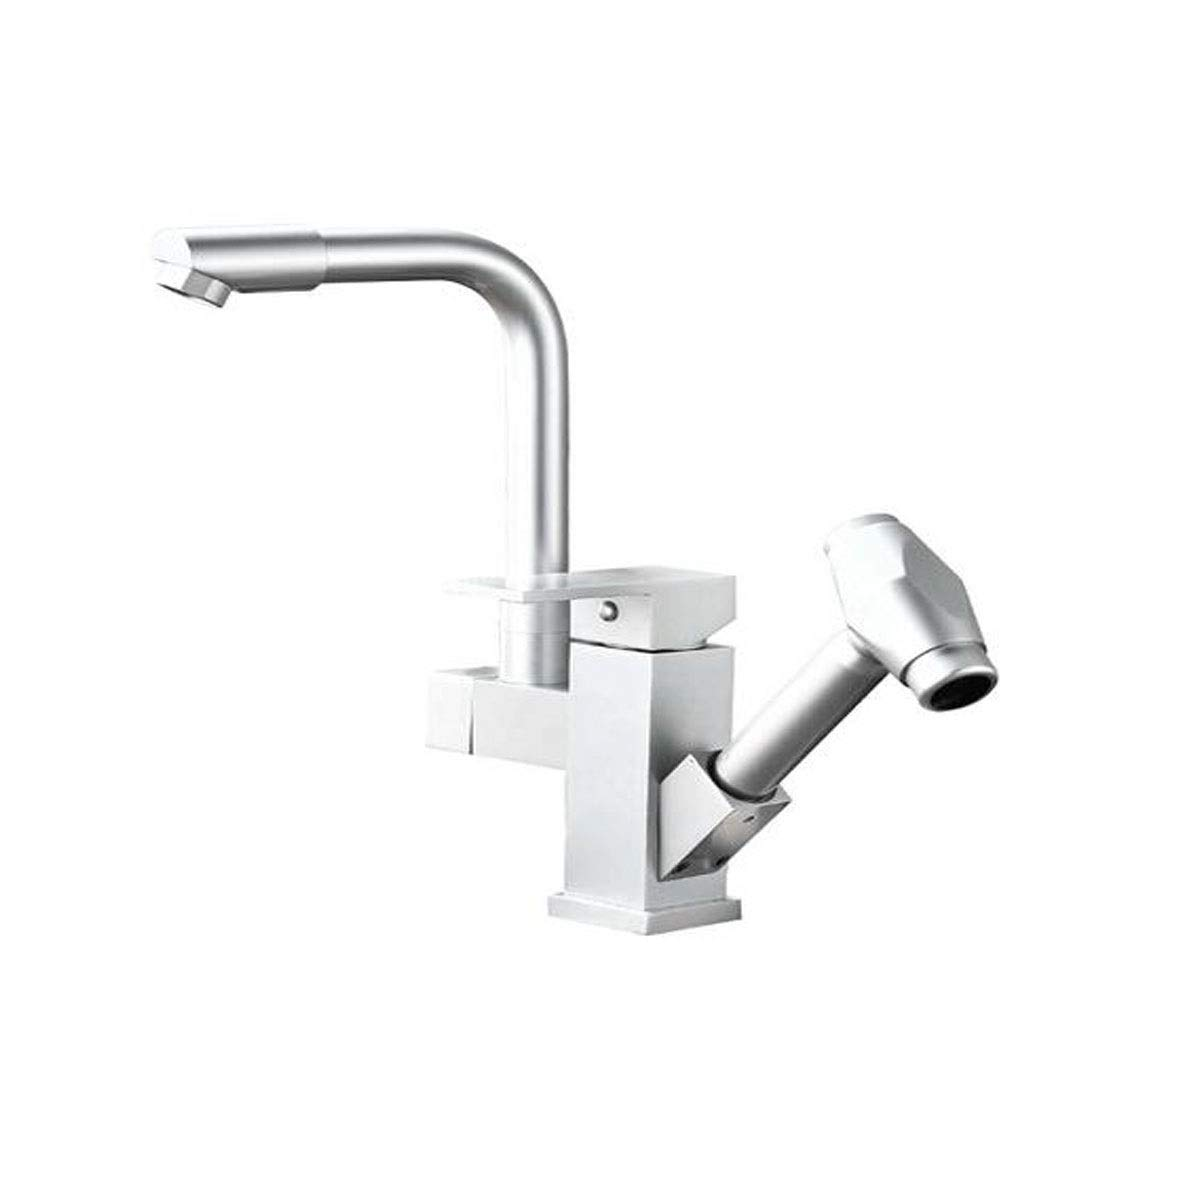 QIANZICAIDIANJIA Faucet, Space Aluminum Pull Kitchen Sink Faucet Sink Hot And Cold Water Basin Rotating Stretch Universal Silver stainless steel faucet (Color : Silver, Size : 292617cm) by QIANZICAIDIANJIA